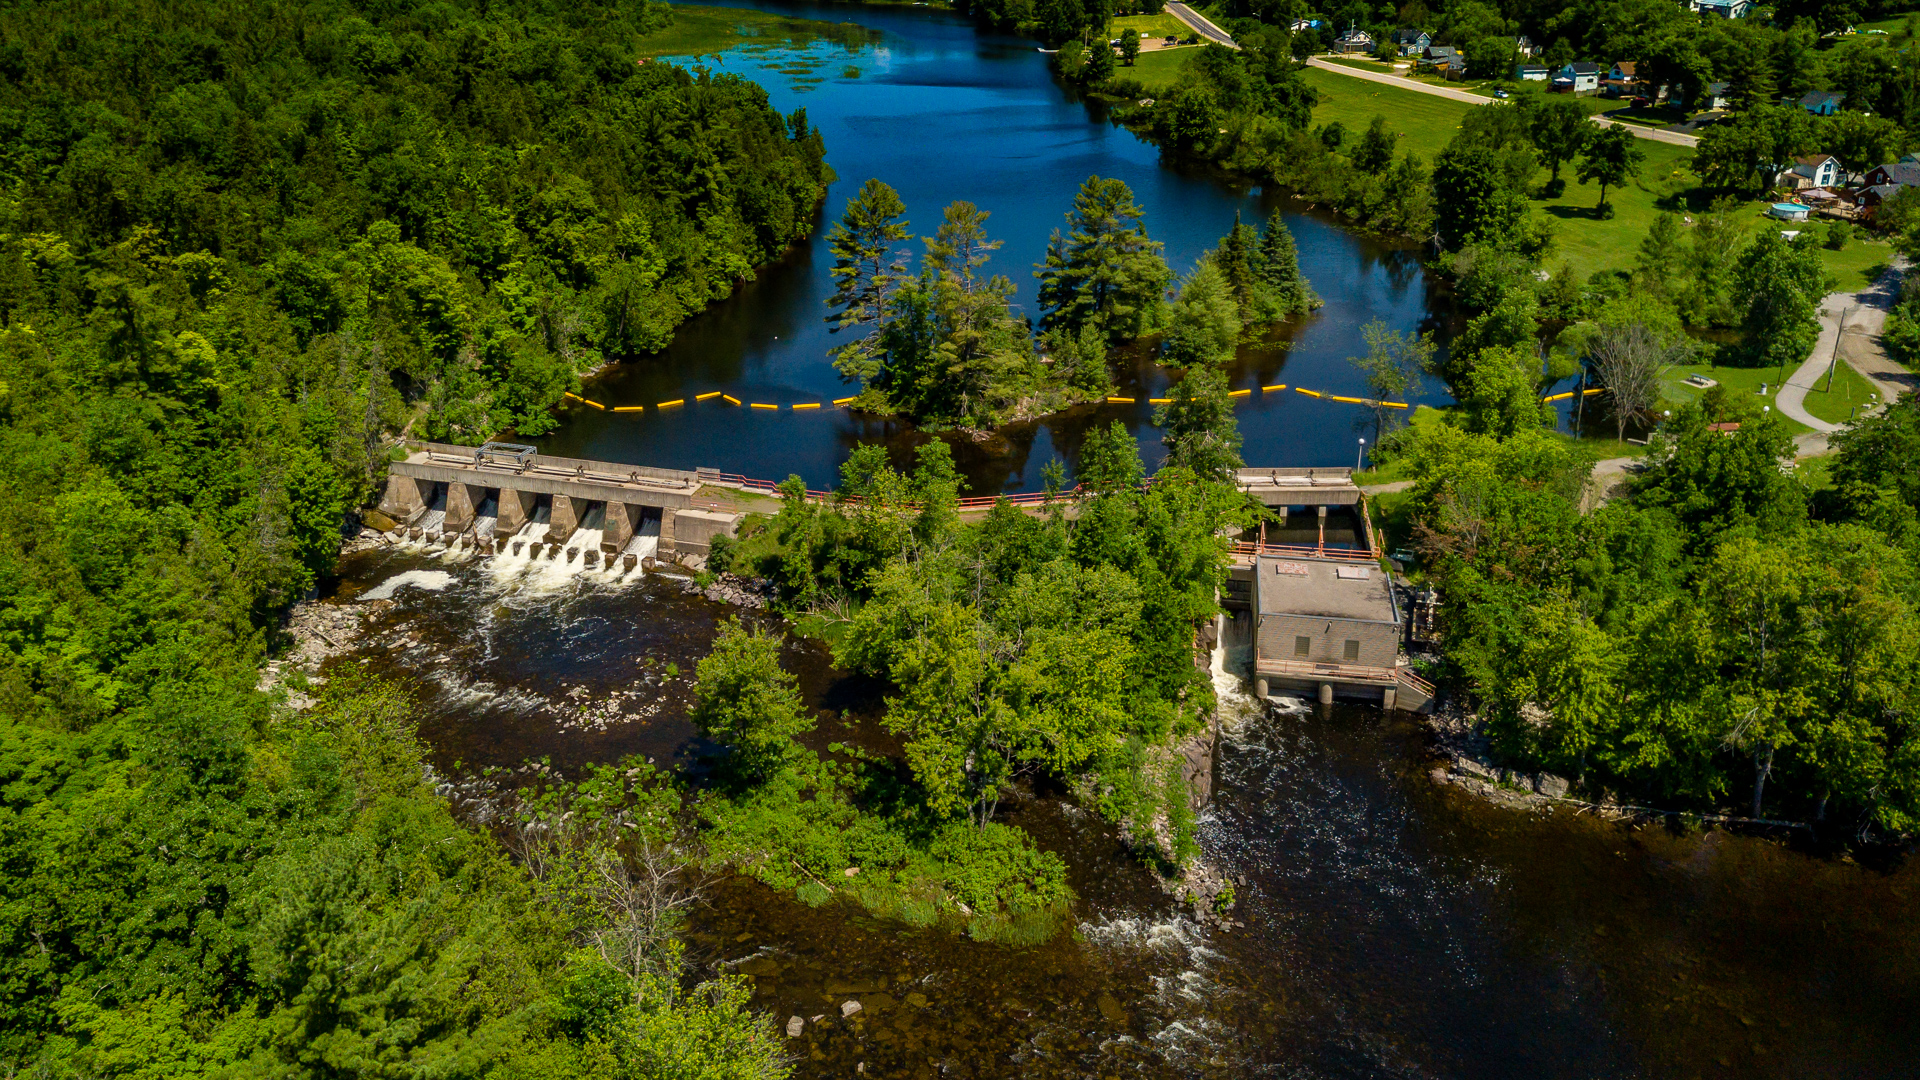 marmora dam and Generating Station 2019  by Sean Scally